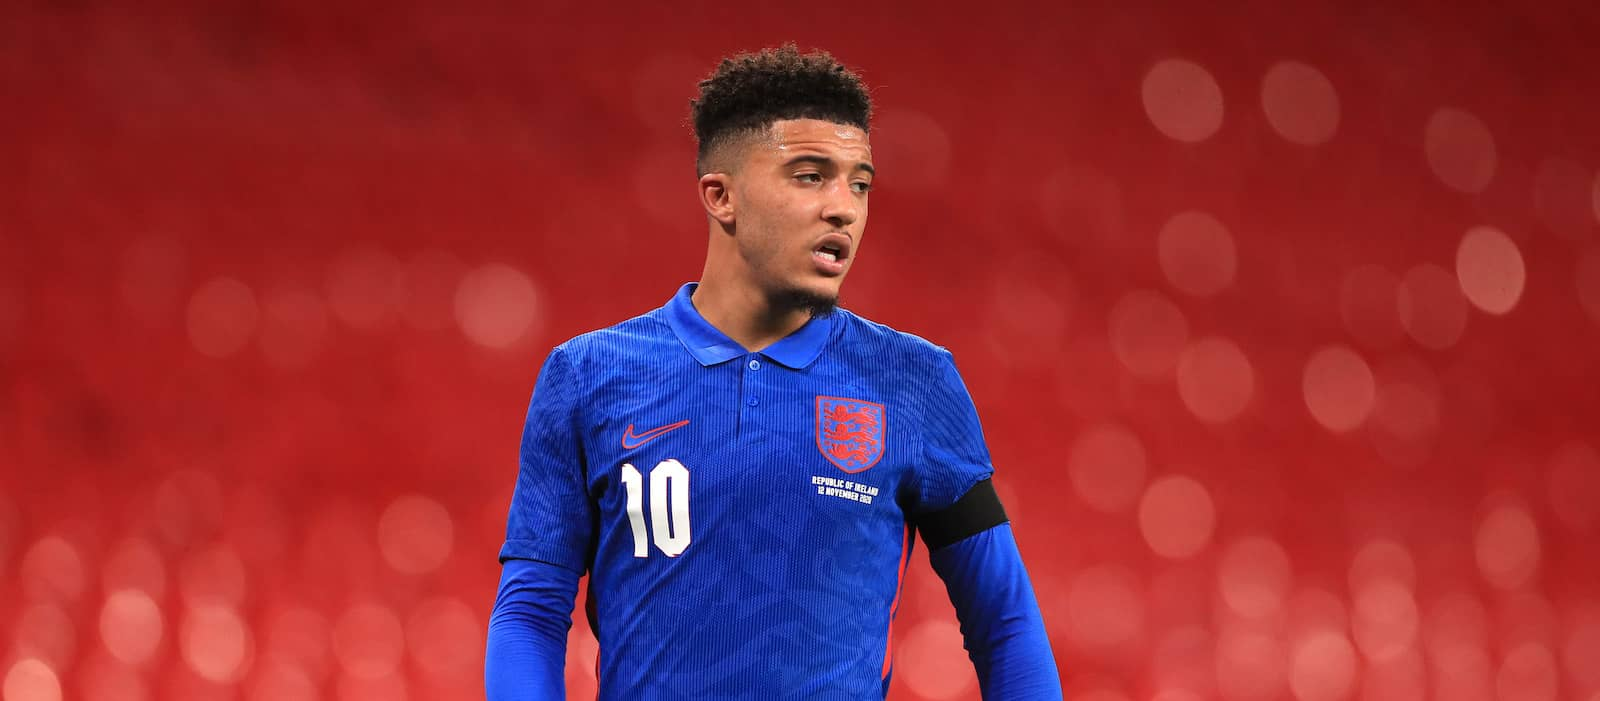 Manchester United did more than just struggle to sign Jadon Sancho